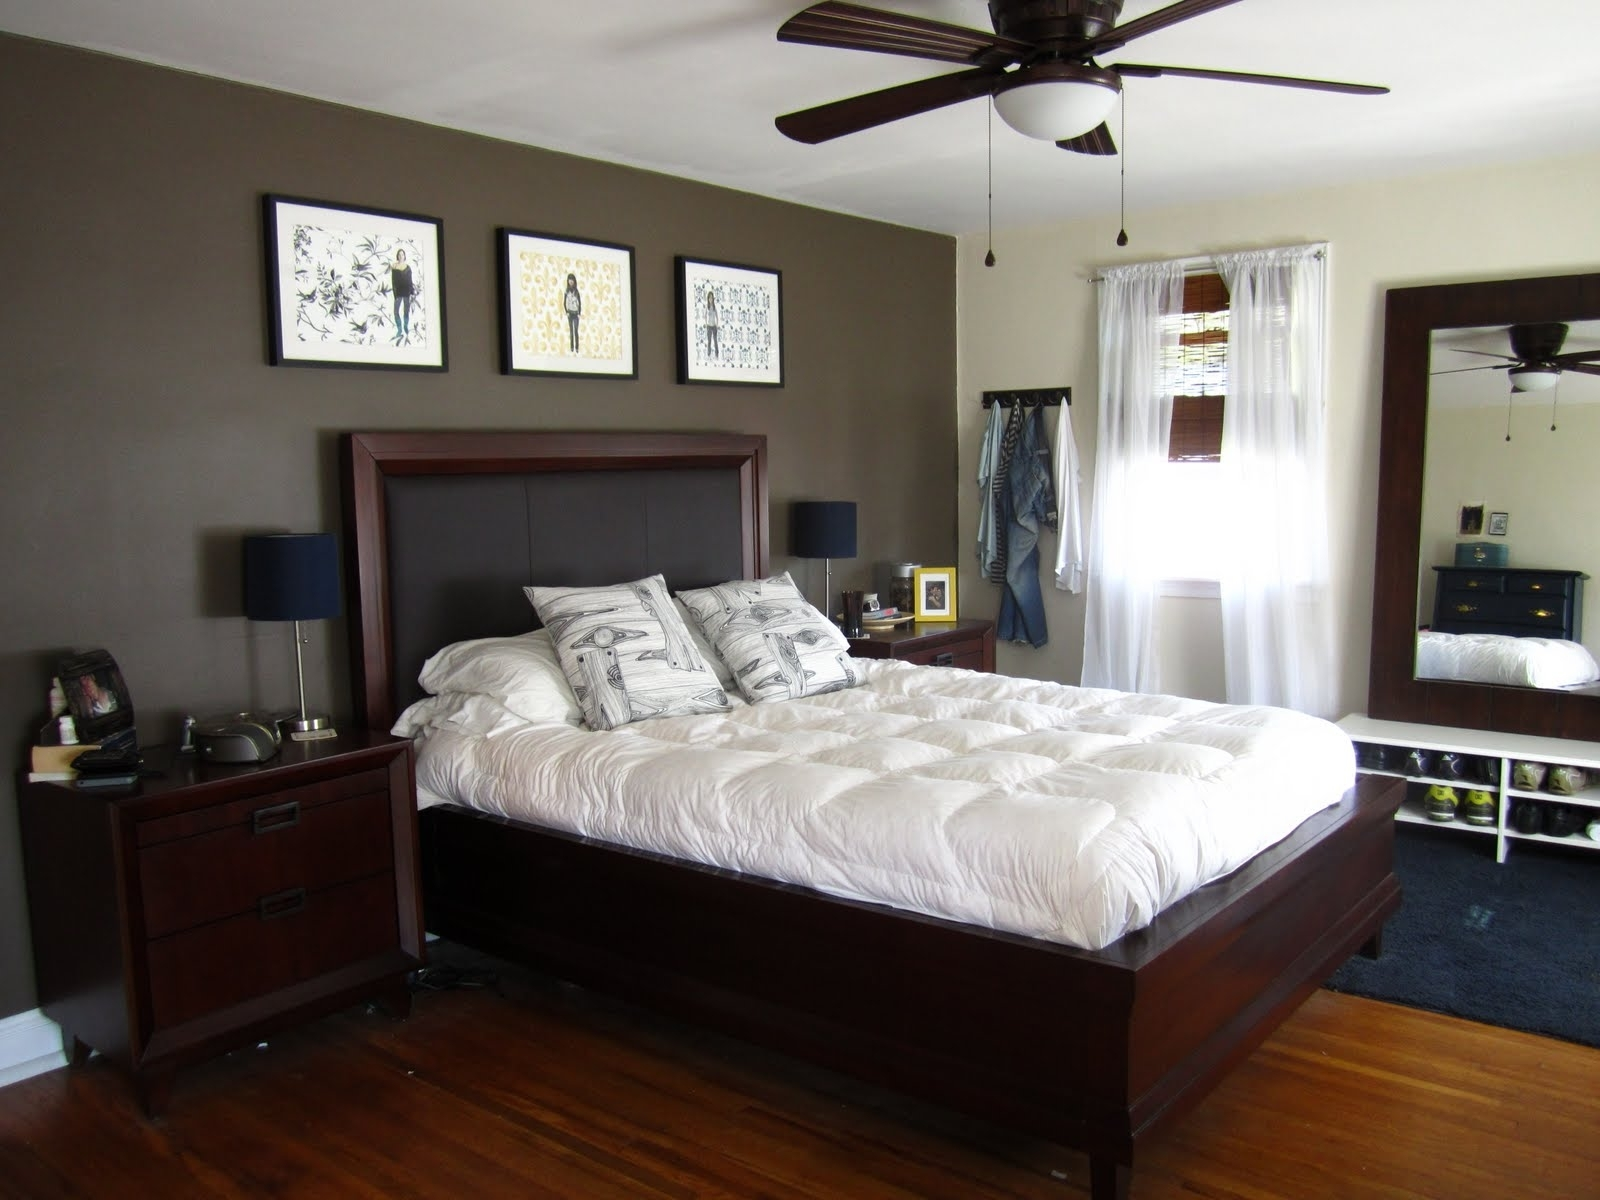 Most Popular Bedroom Design: Focal Wall Black Accent Wall Accent Wall Designs Intended For Wall Accents Behind Bed (View 8 of 15)